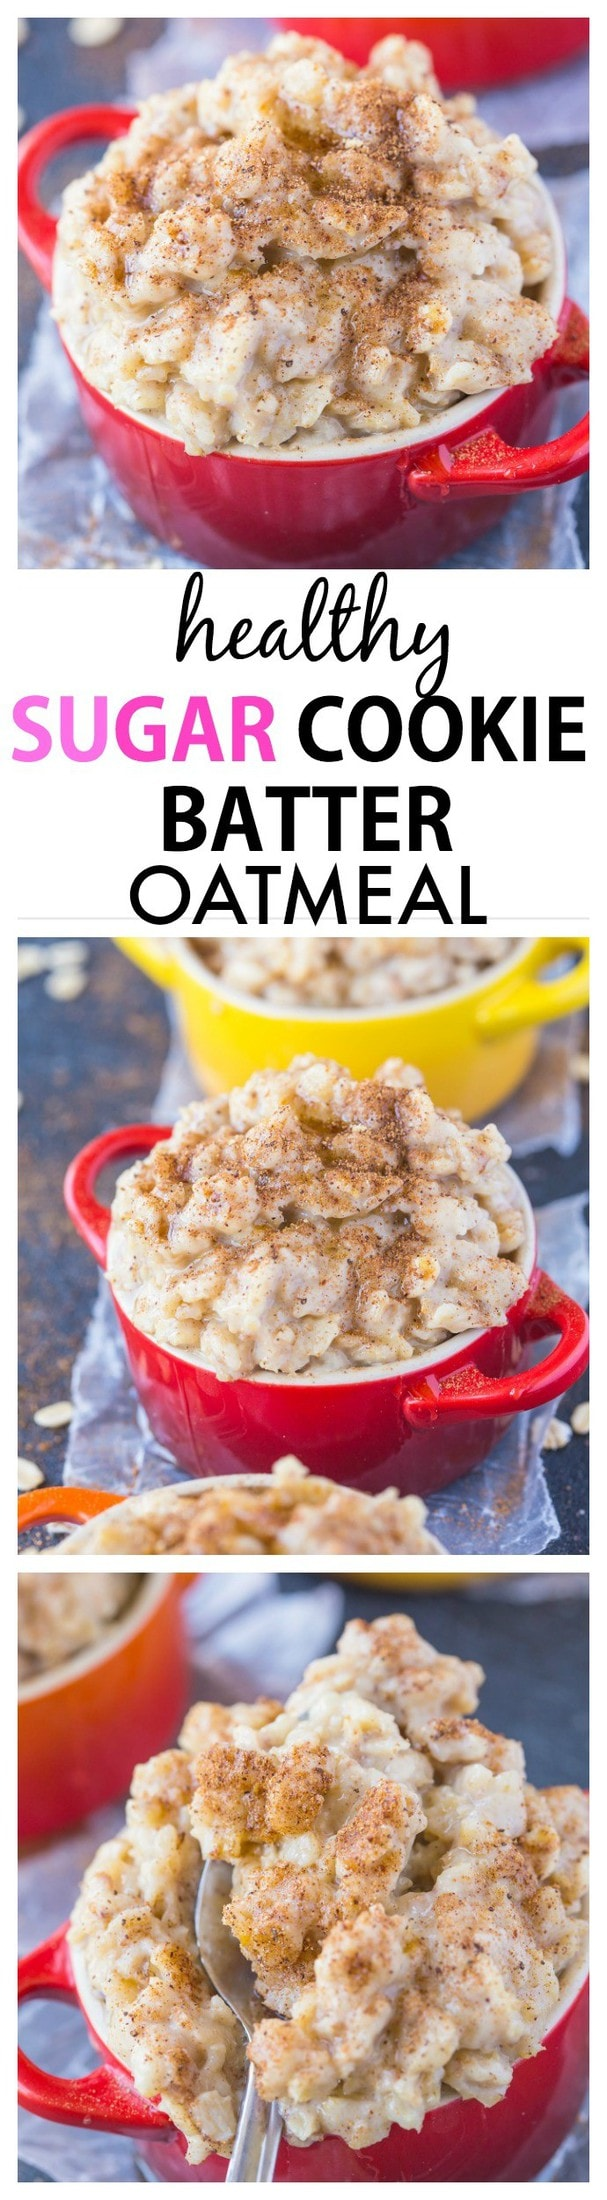 Smooth, creamy and secretly healthy, this sugar cookie batter oatmeal has incredible texture- It can also be completely sugar free too! {vegan, gluten free, high protein recipe}